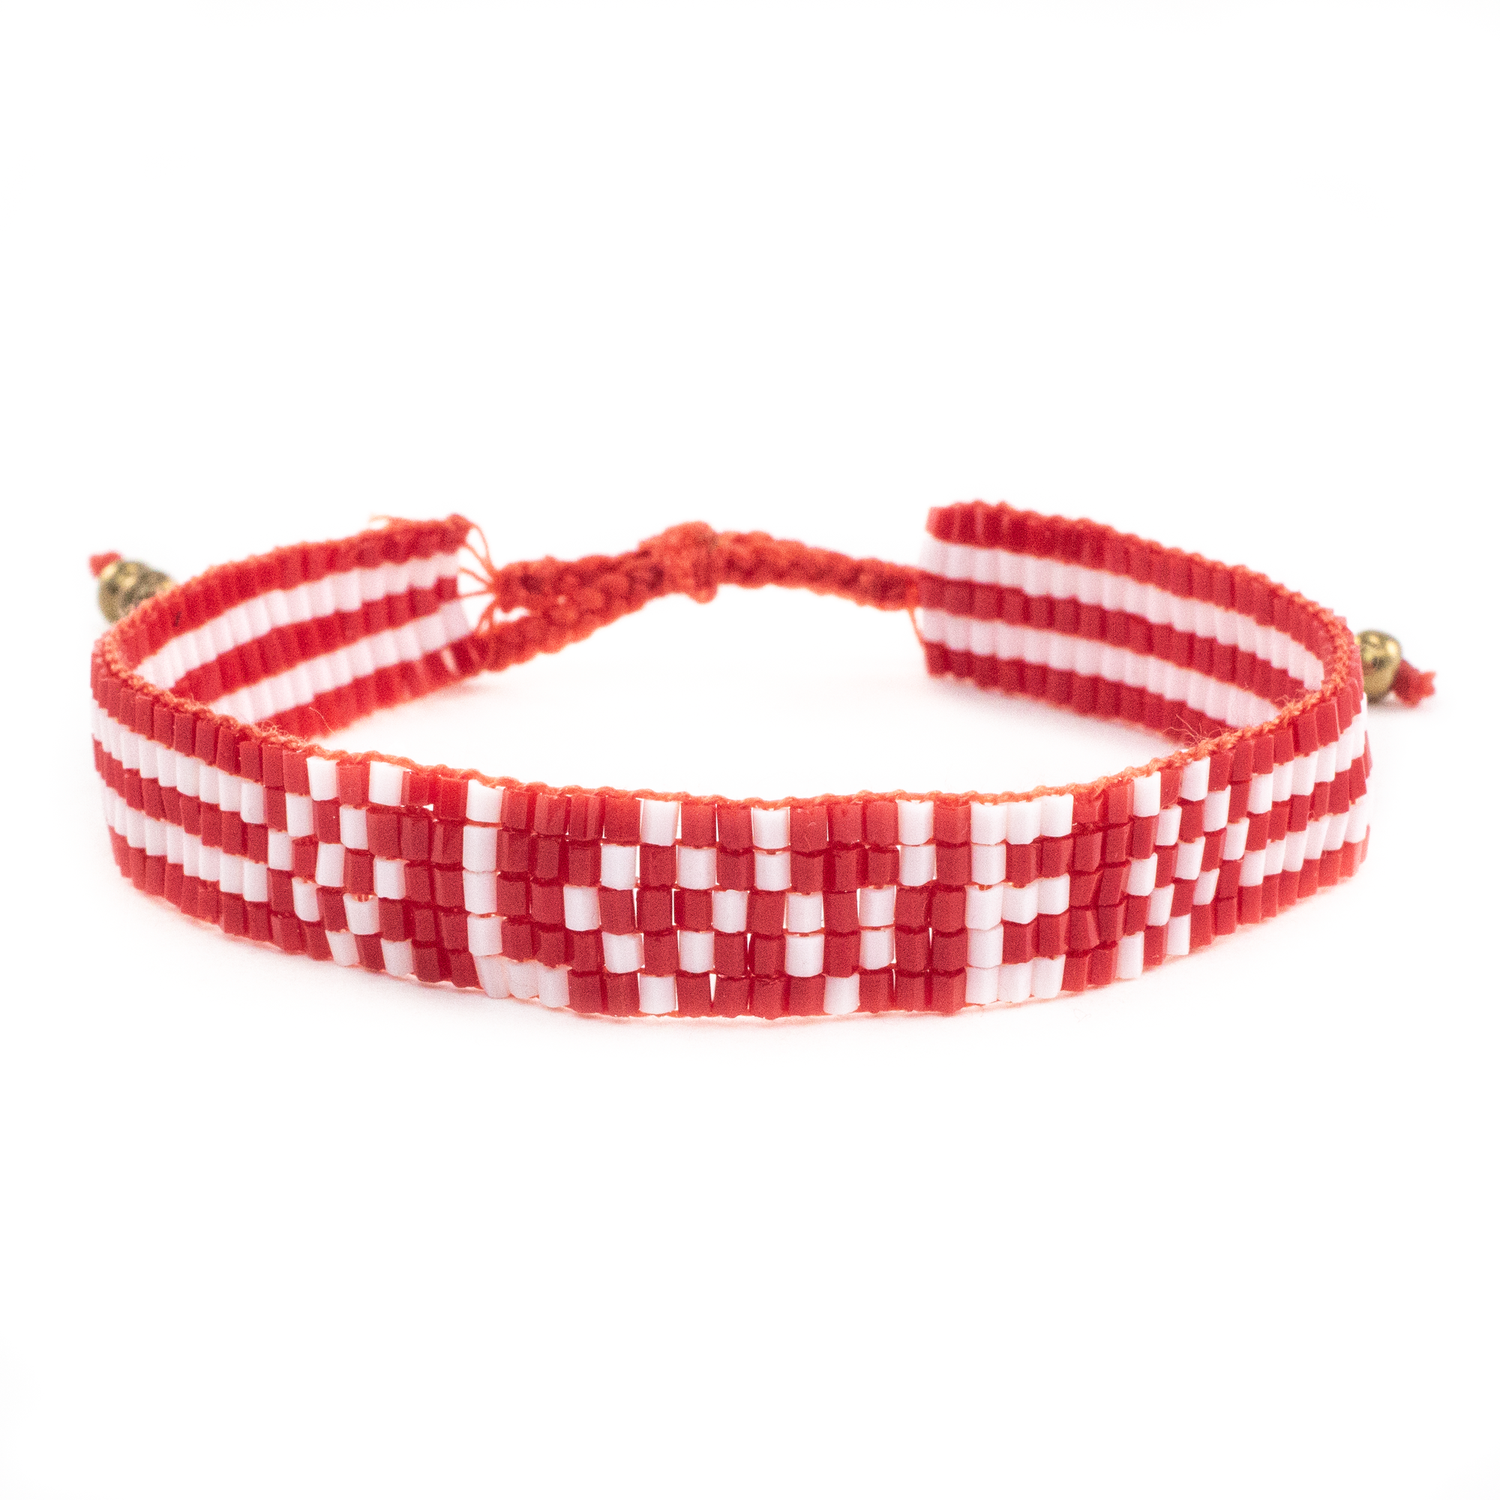 Love Project Red Seed Love Bracelet